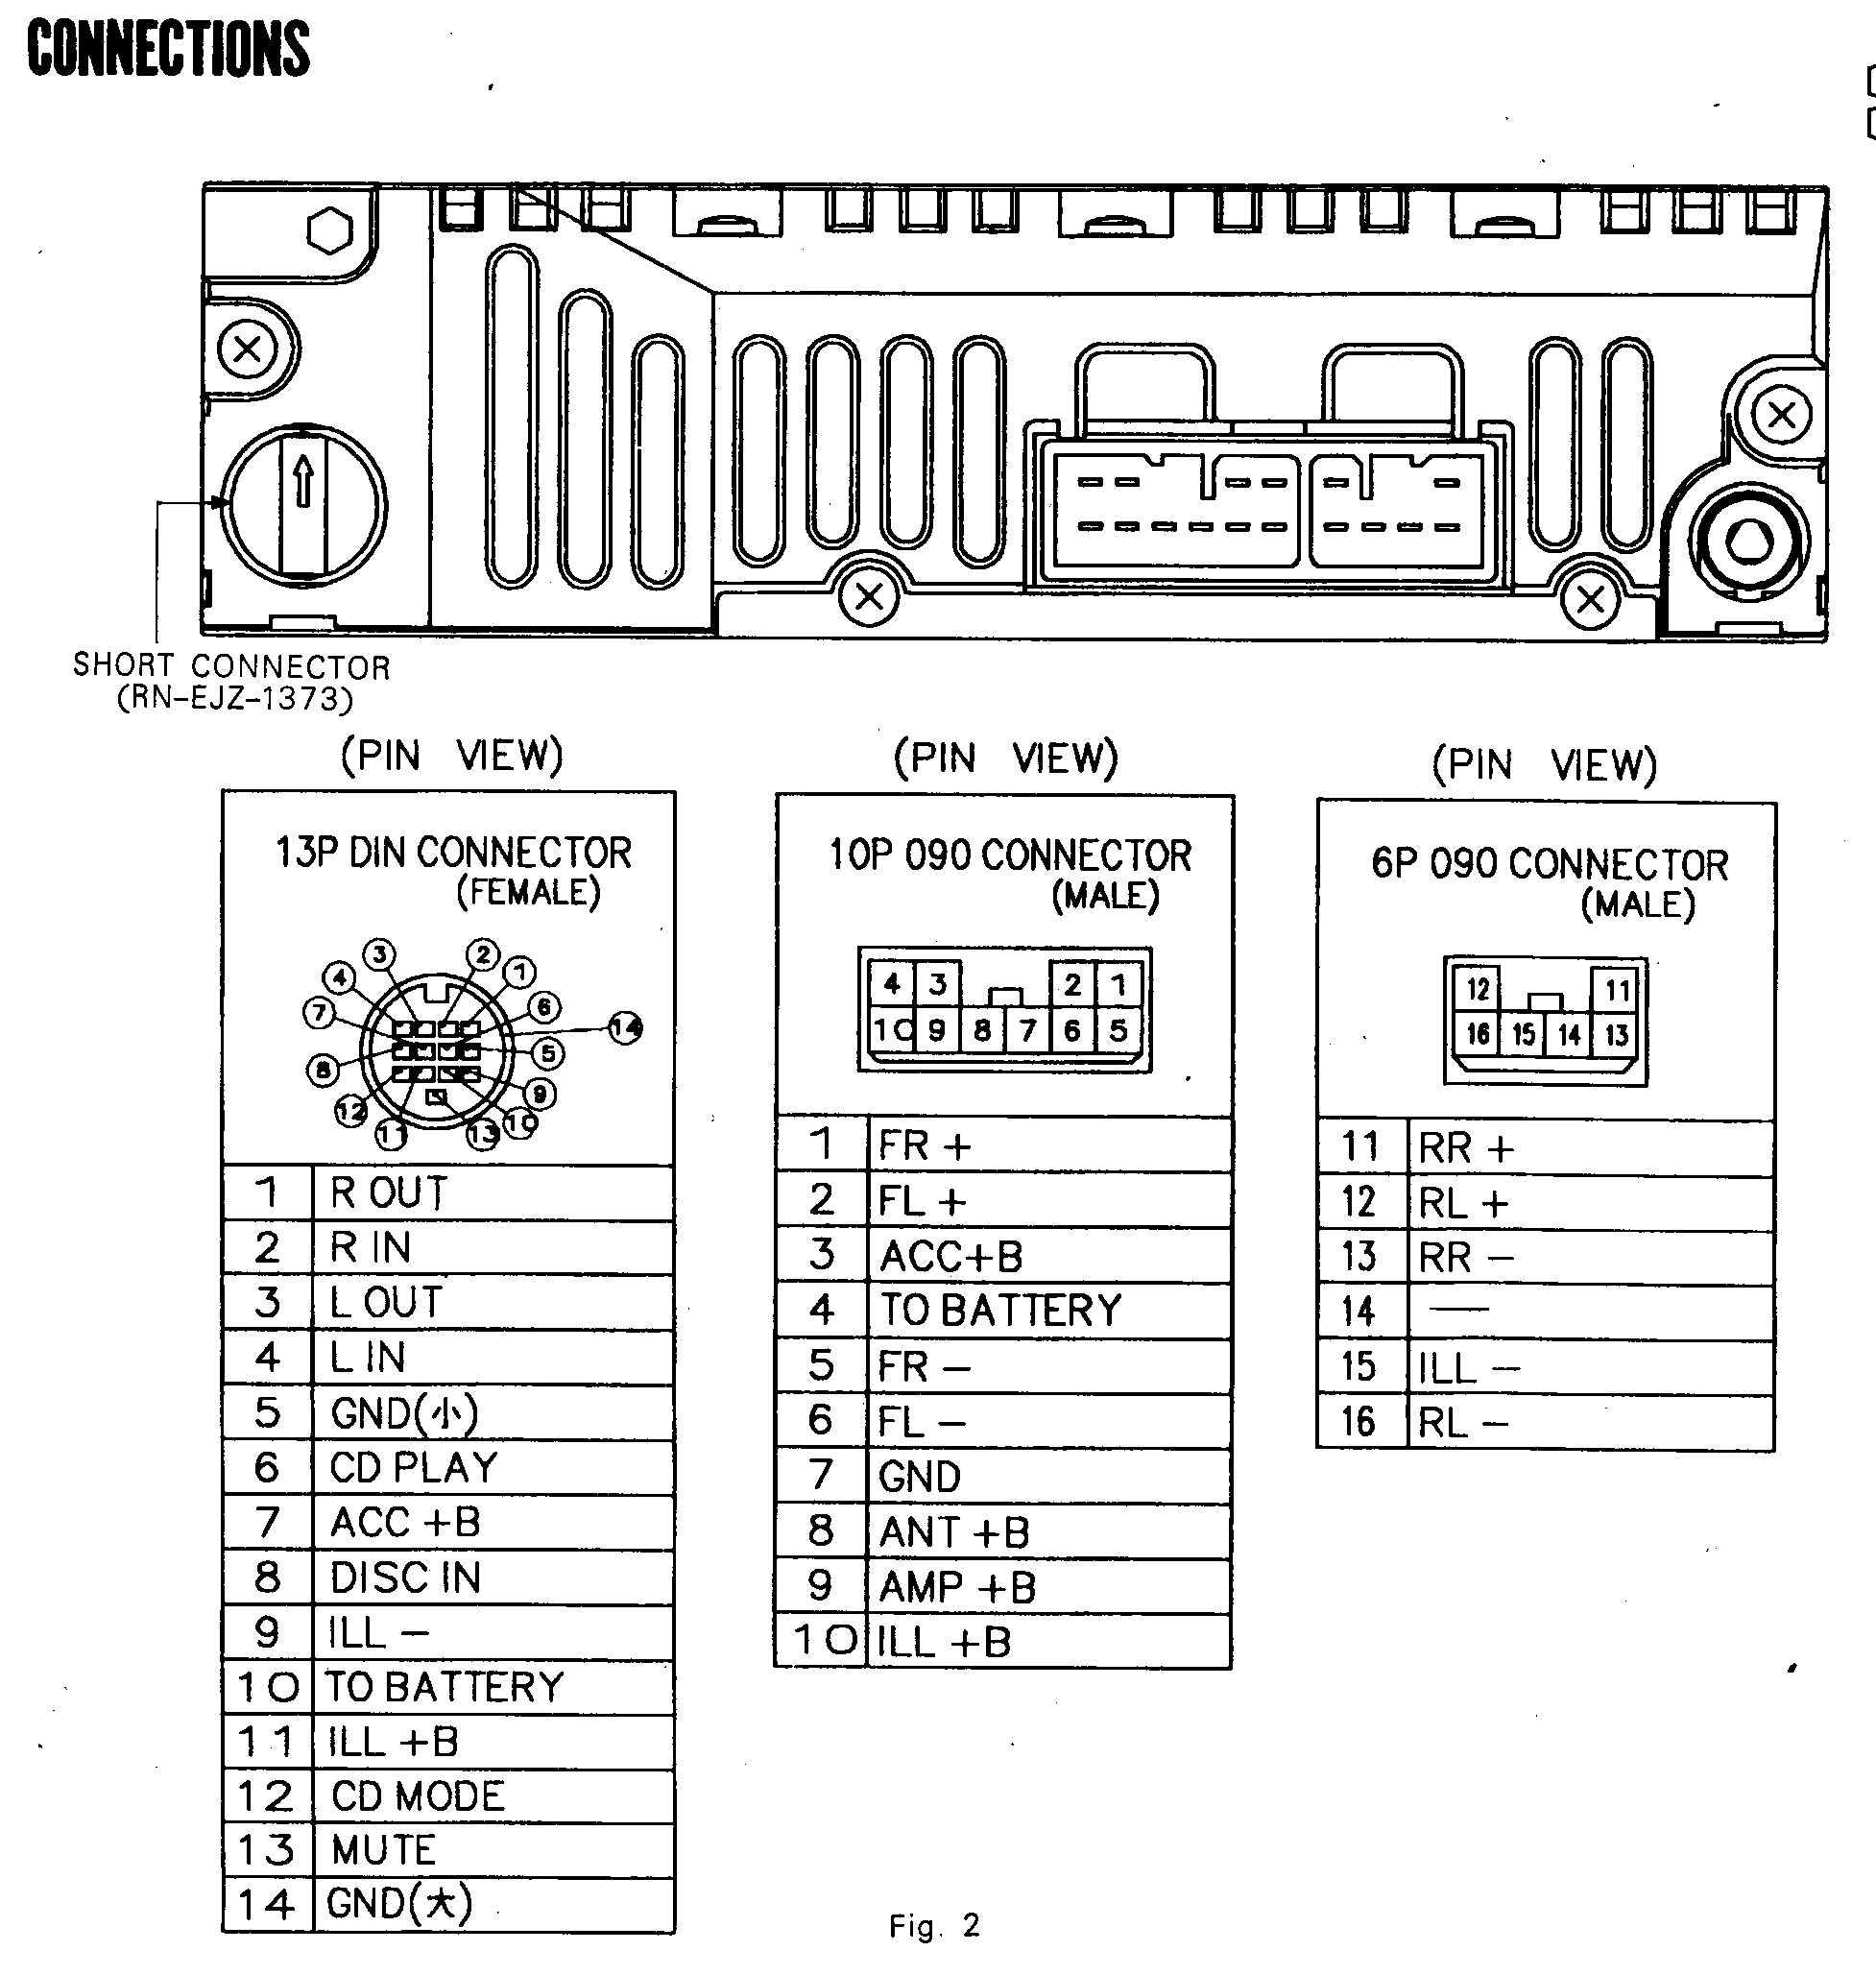 1996 isuzu trooper stereo wiring diagram wiring diagrams collection rh starsinc co Isuzu NPR Fuse Box Diagram Isuzu Starter Relay Wiring Diagram